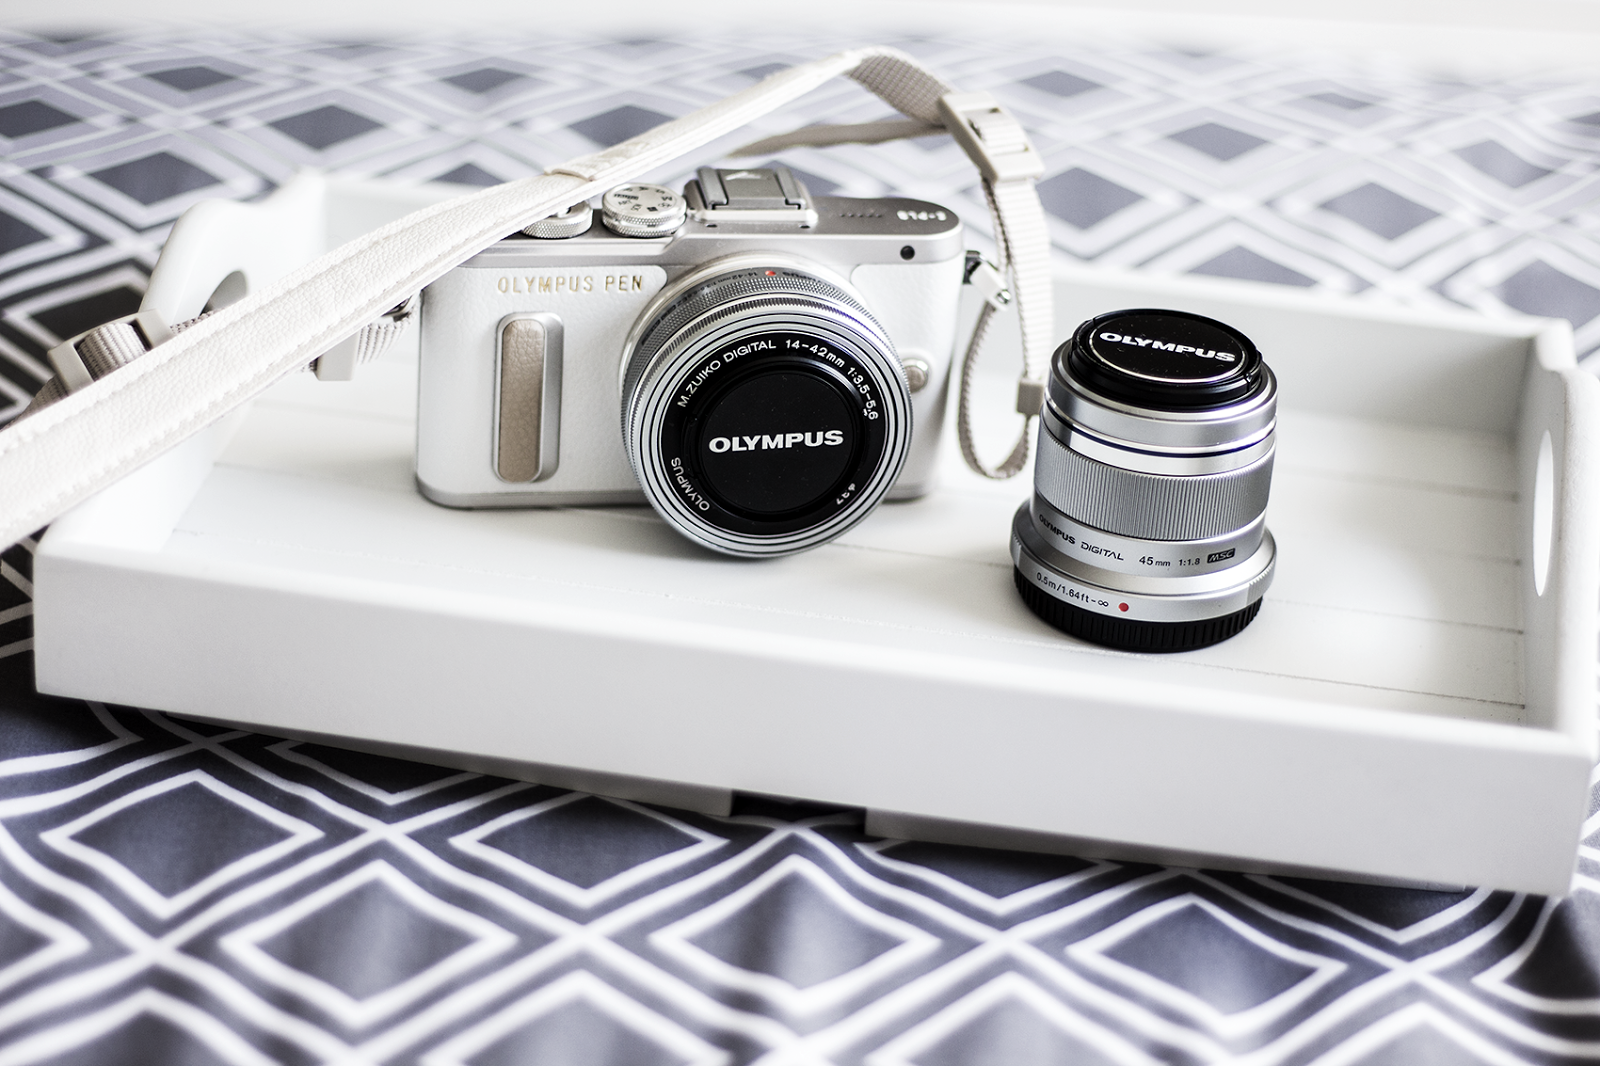 The Ultimate Blogging Camera- Olympus Pen E-PL8